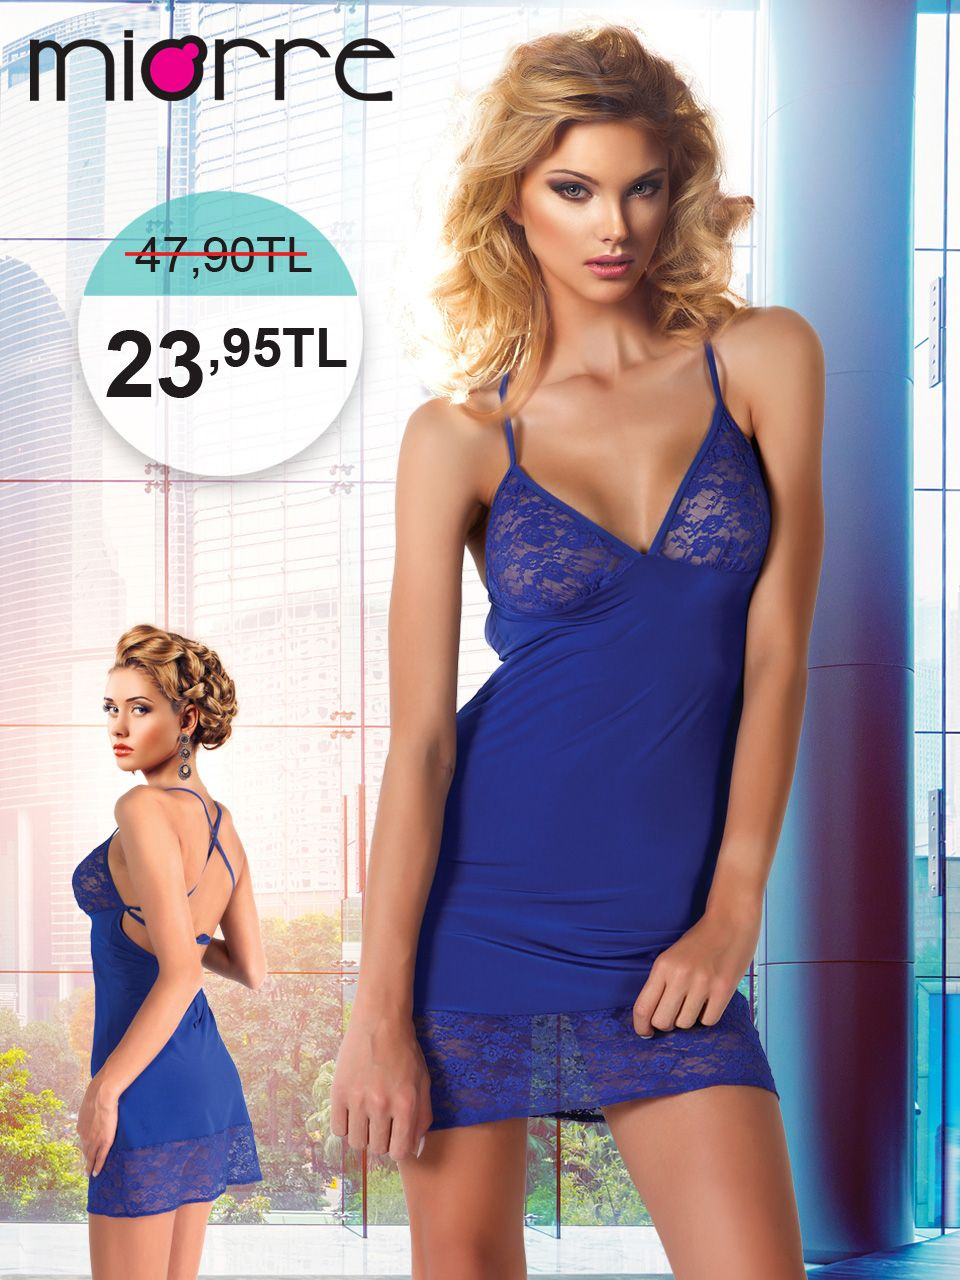 27622b110a7c5 Miorre Gecelik String Takım - Avrupa Networking Night Gown, Nightwear,  Bodycon Dress, Dresses